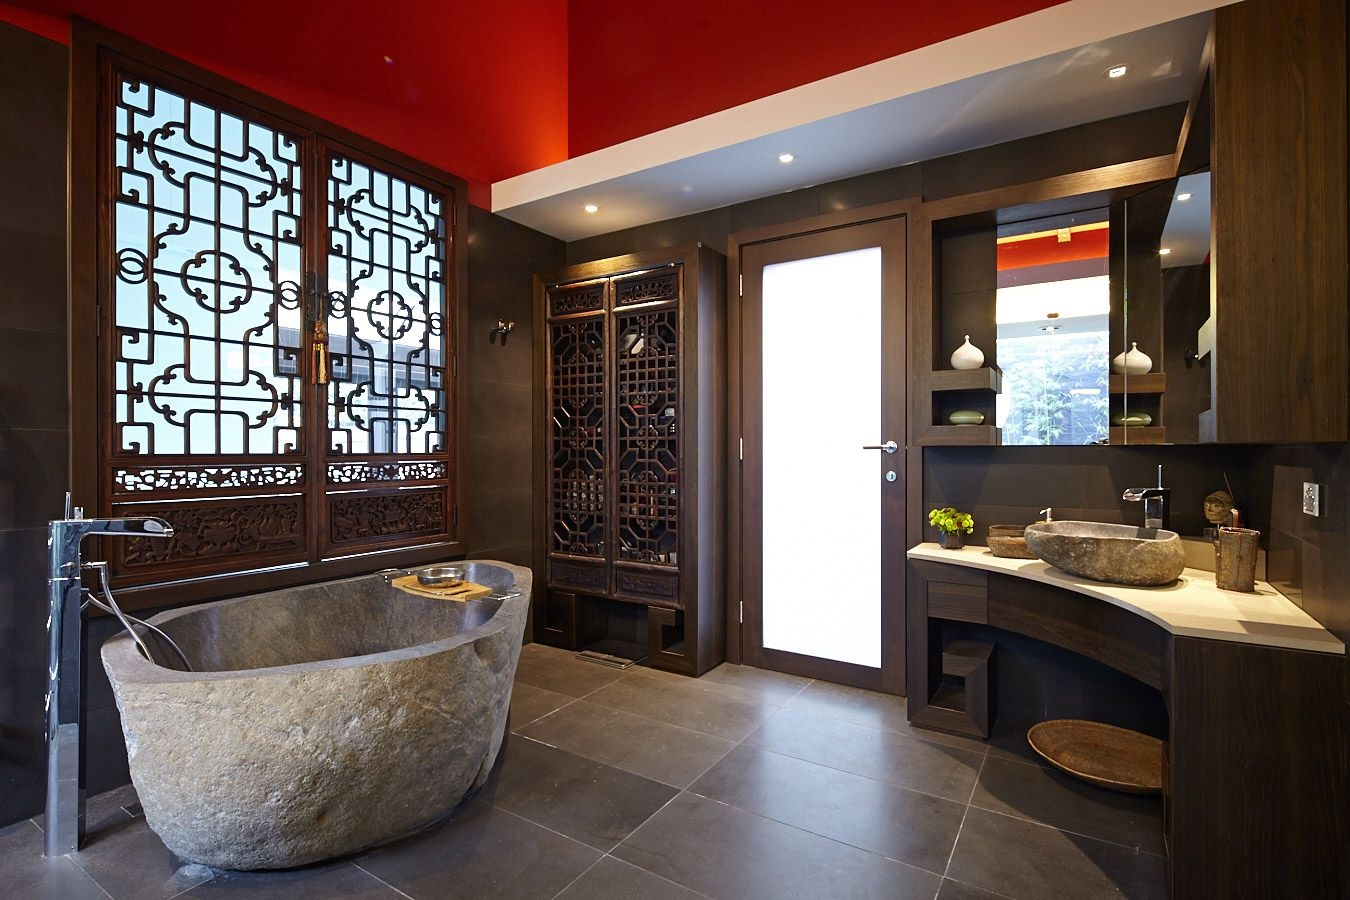 These Are The Most Impressive Natural Stone Bathtubs On The Internet – Adorable Home